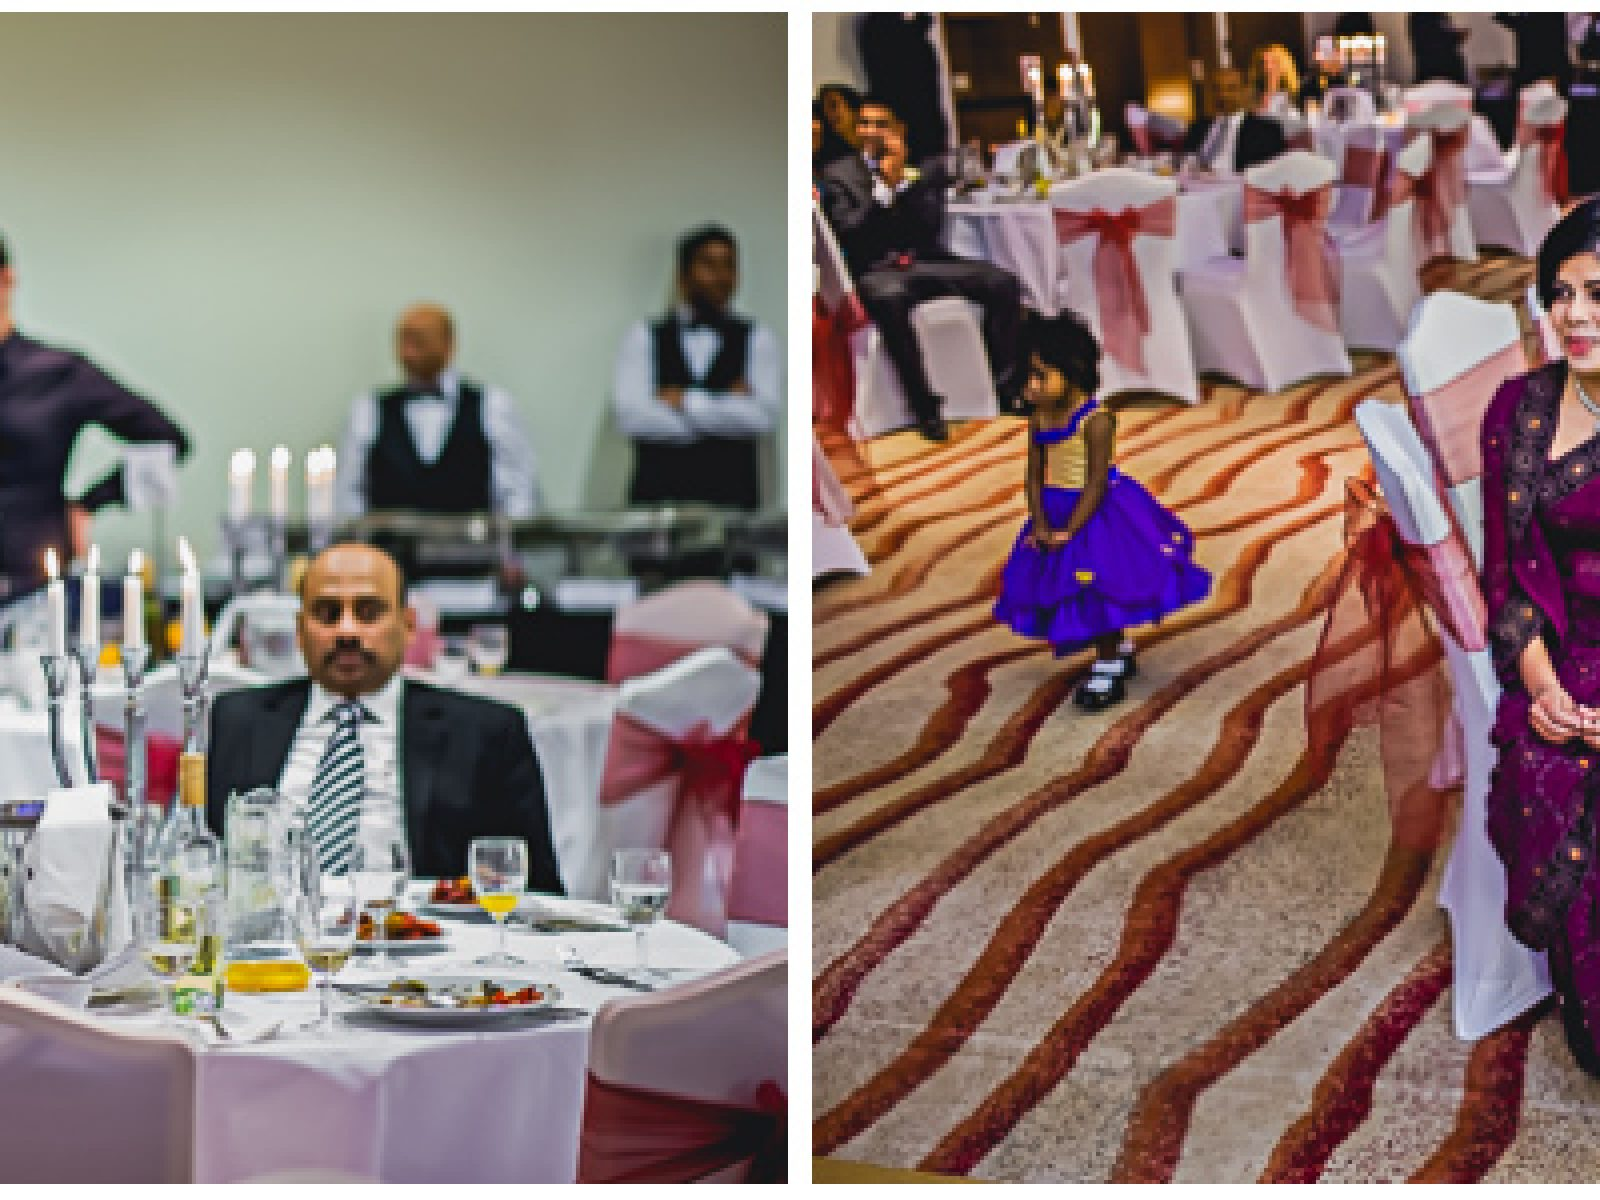 75a 1600x1200 - Darshani and Anthony - wedding photographer in London